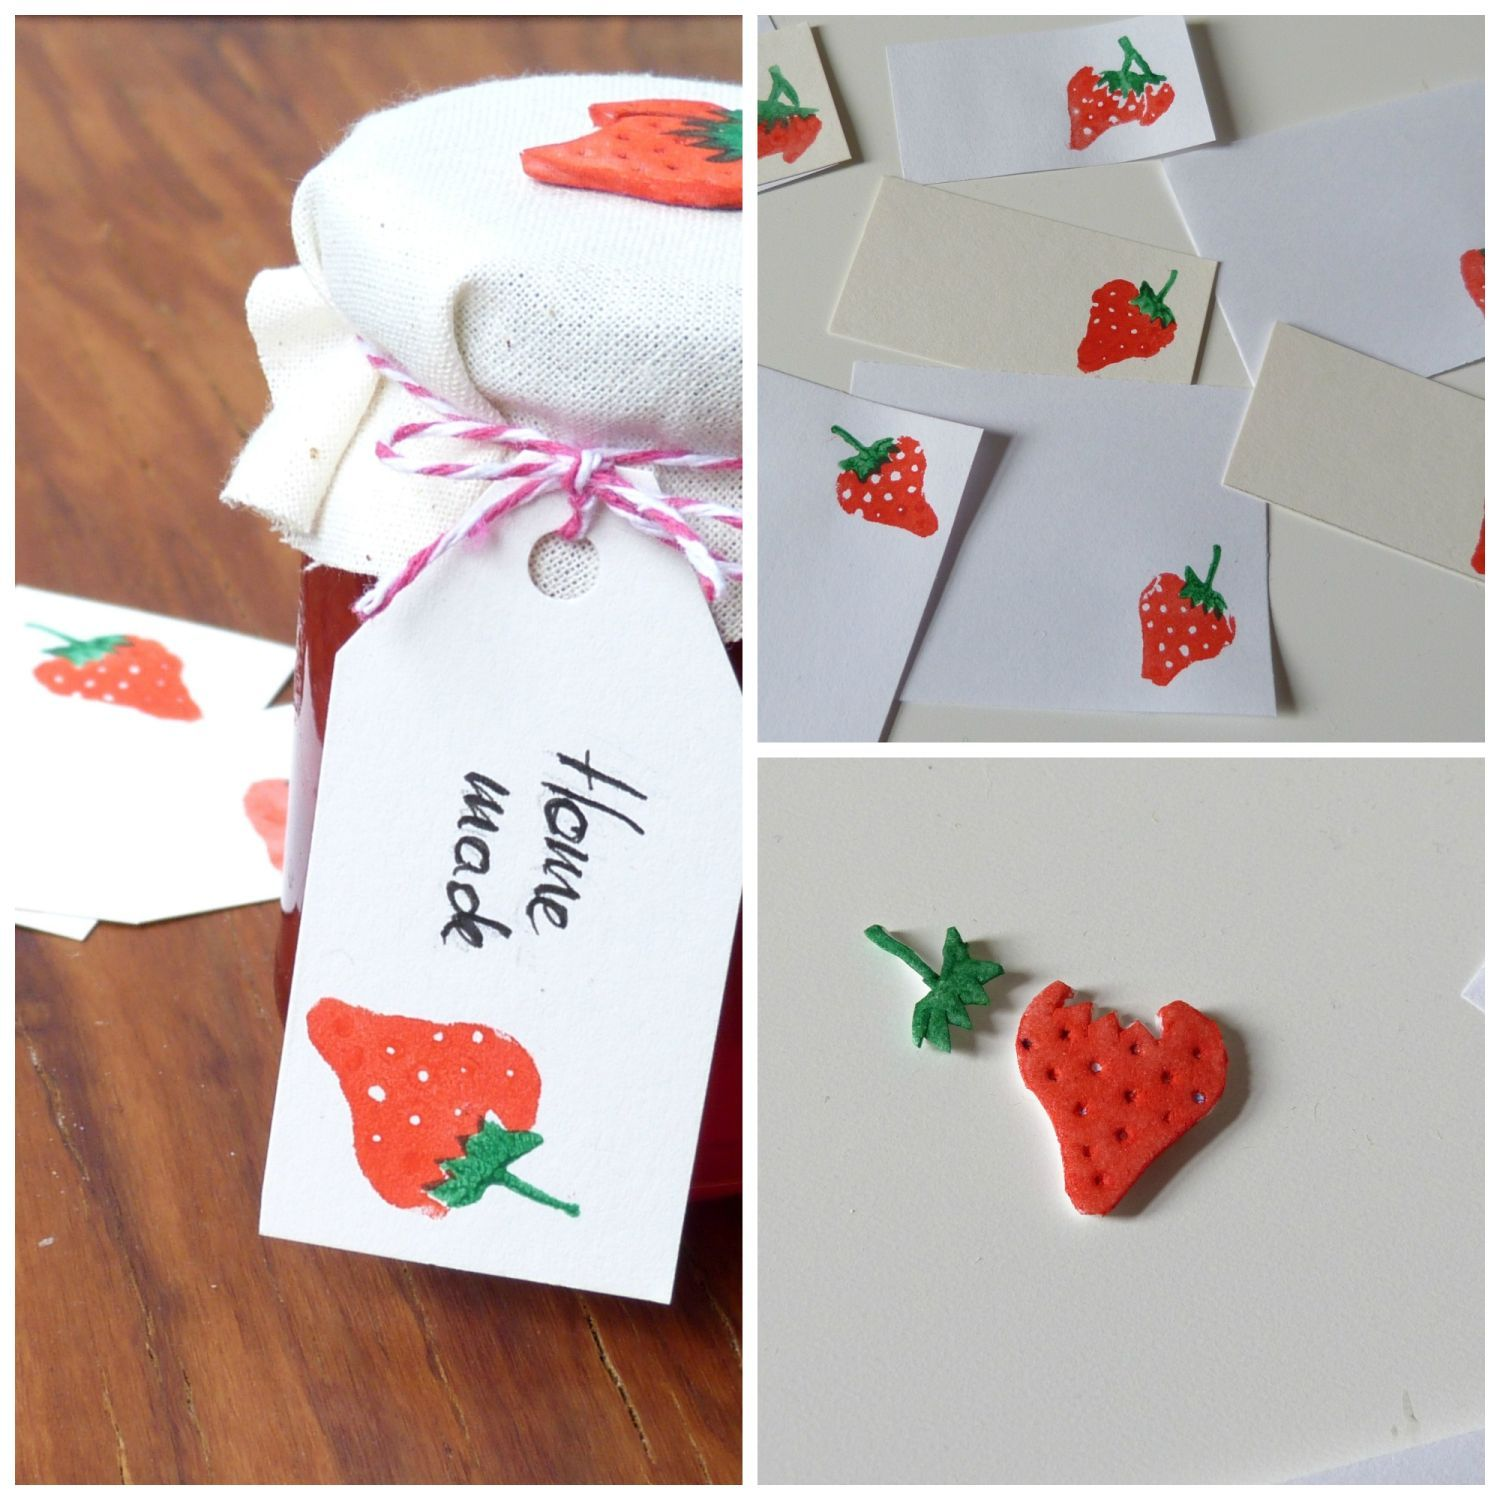 Endearing Stempel Selber Machen Decoration Of Erdbeer Moosgummi - Strawberry Print Diy